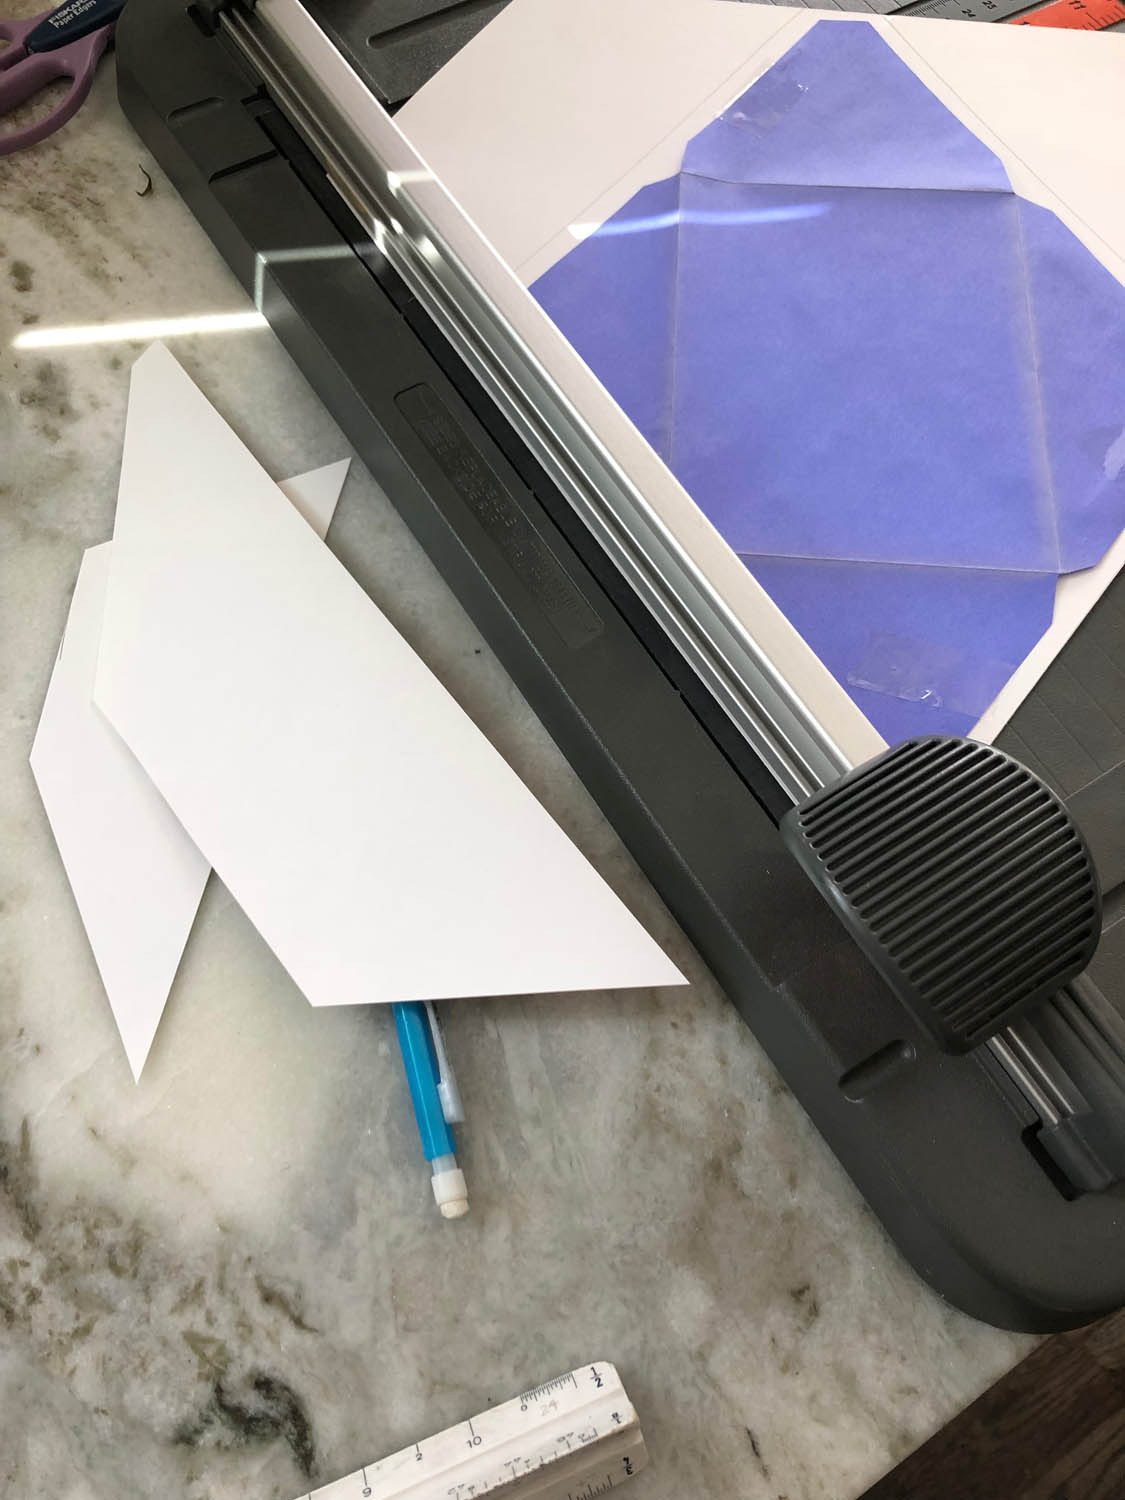 trimming white card stock for DIY envelopes with scrapbook paper